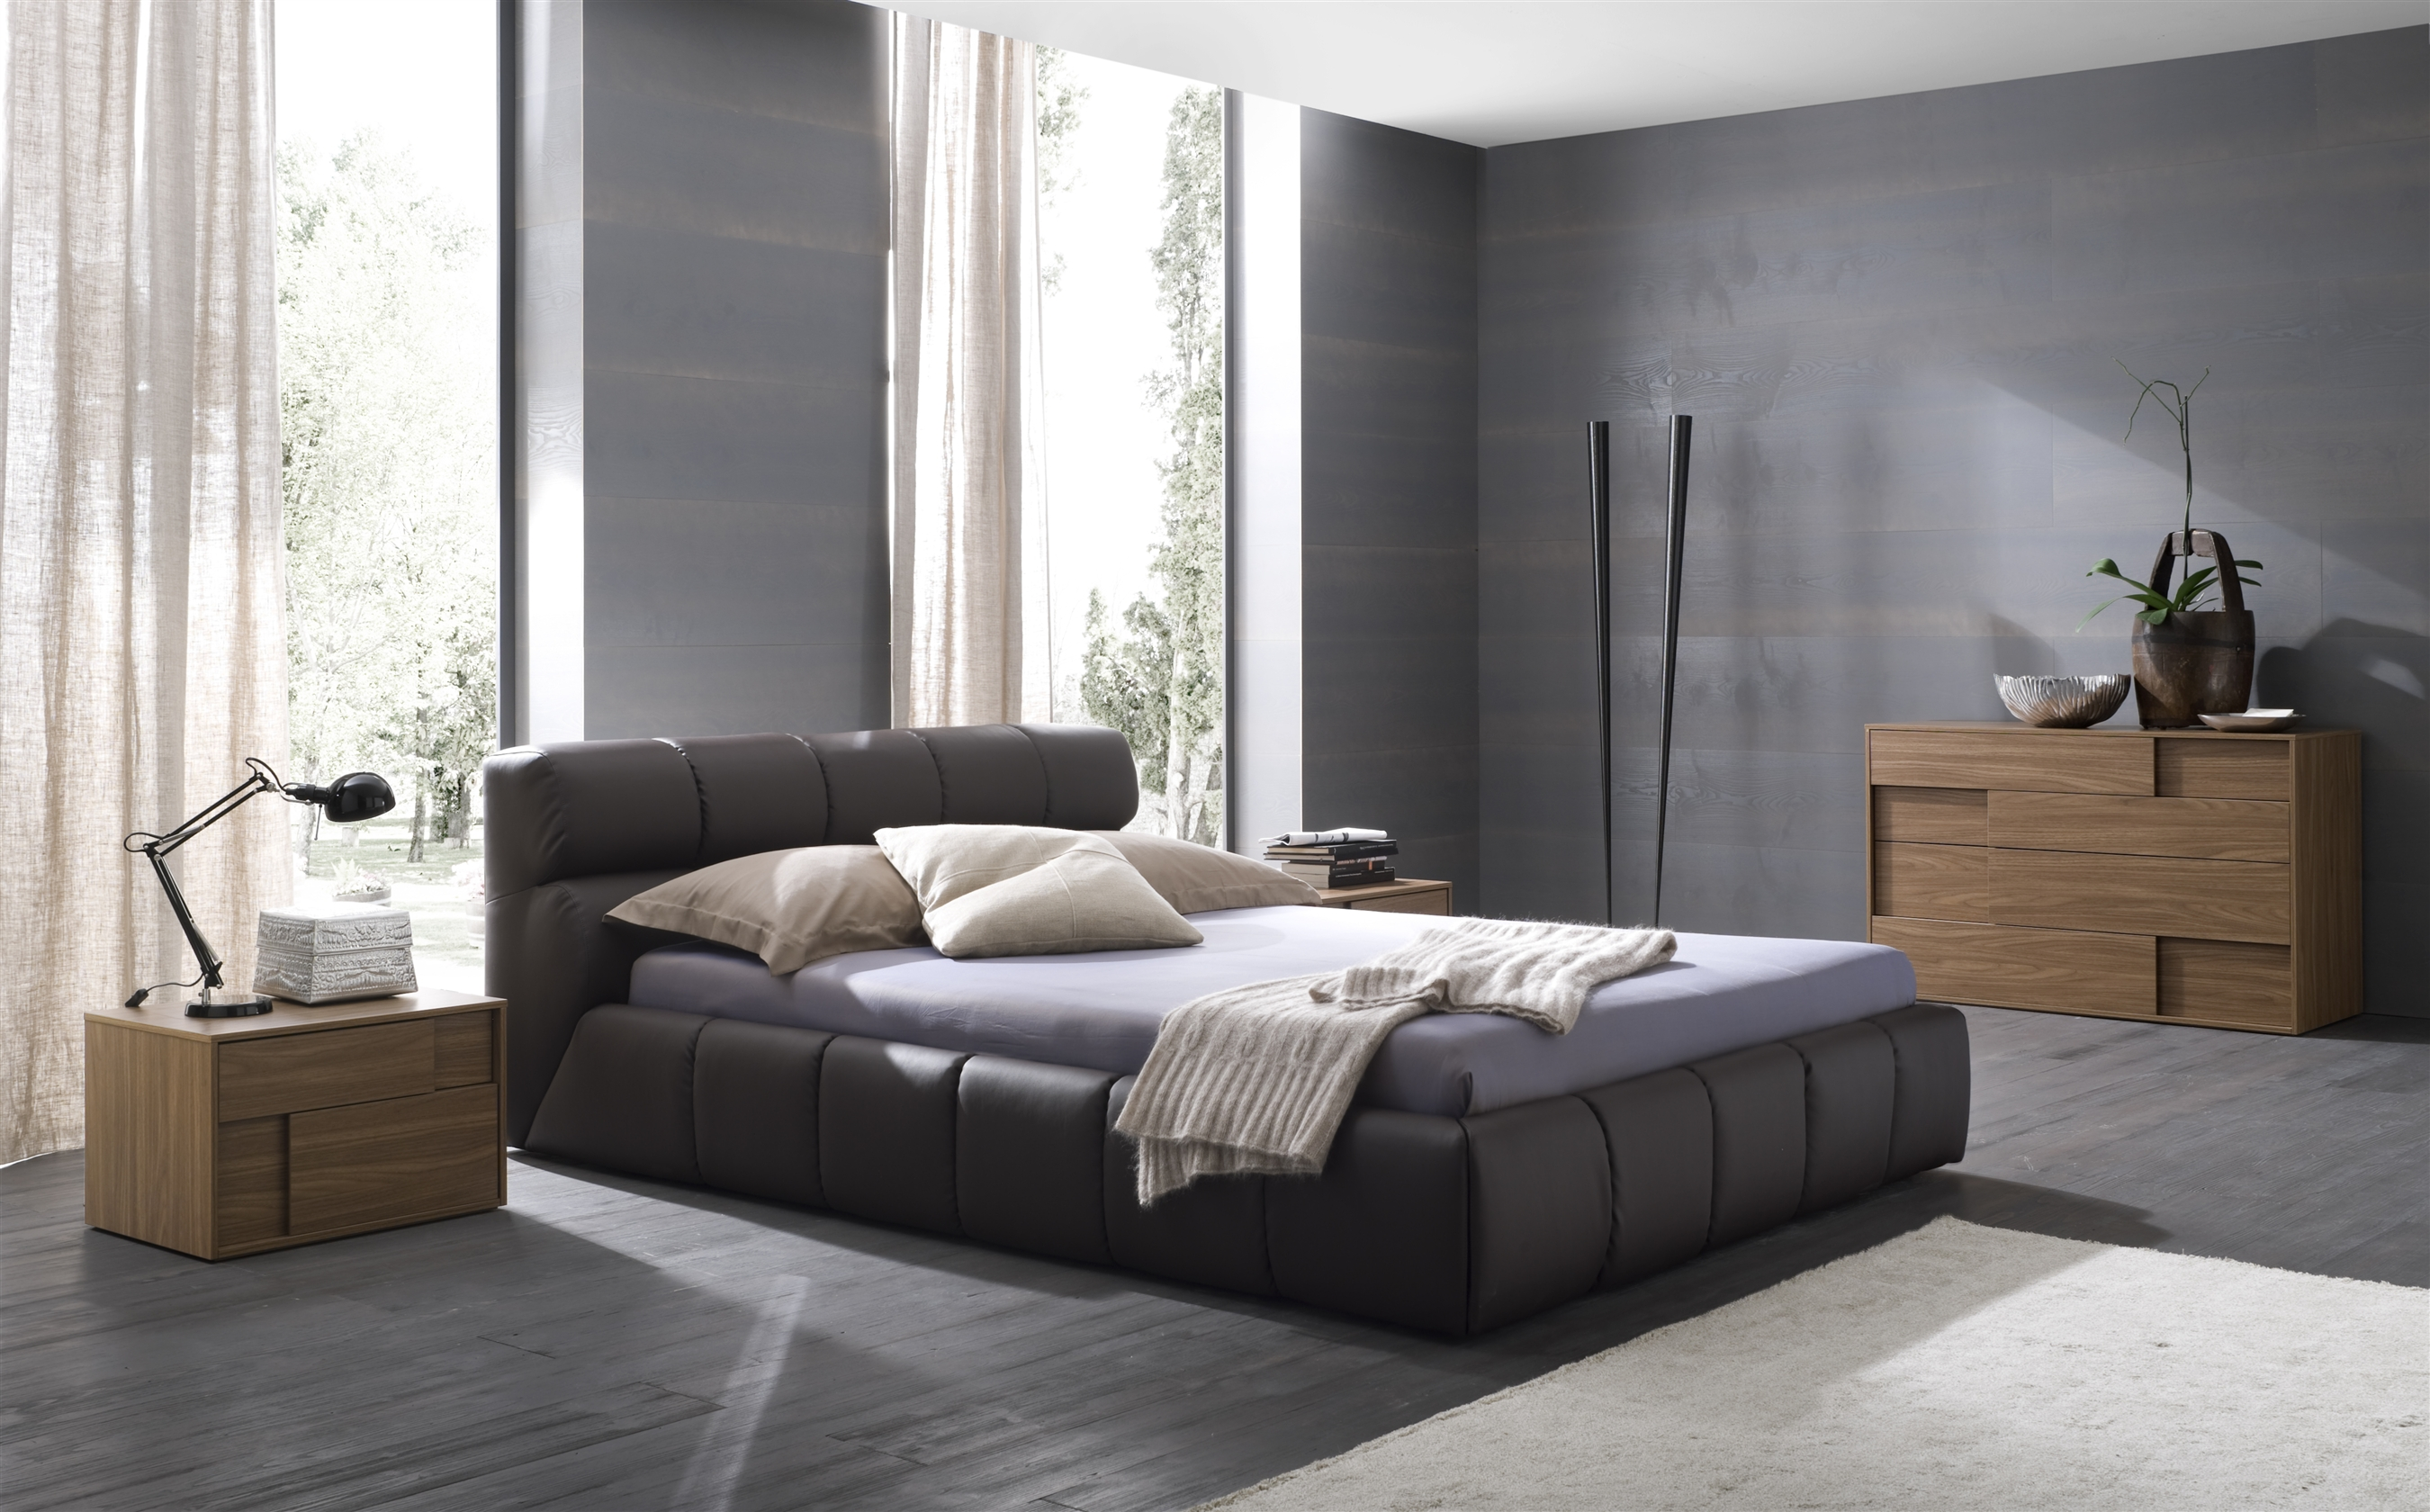 40 Modern Bedroom For Your Home - The WoW Style on Bedroom Ideas For Men Small Room  id=74422